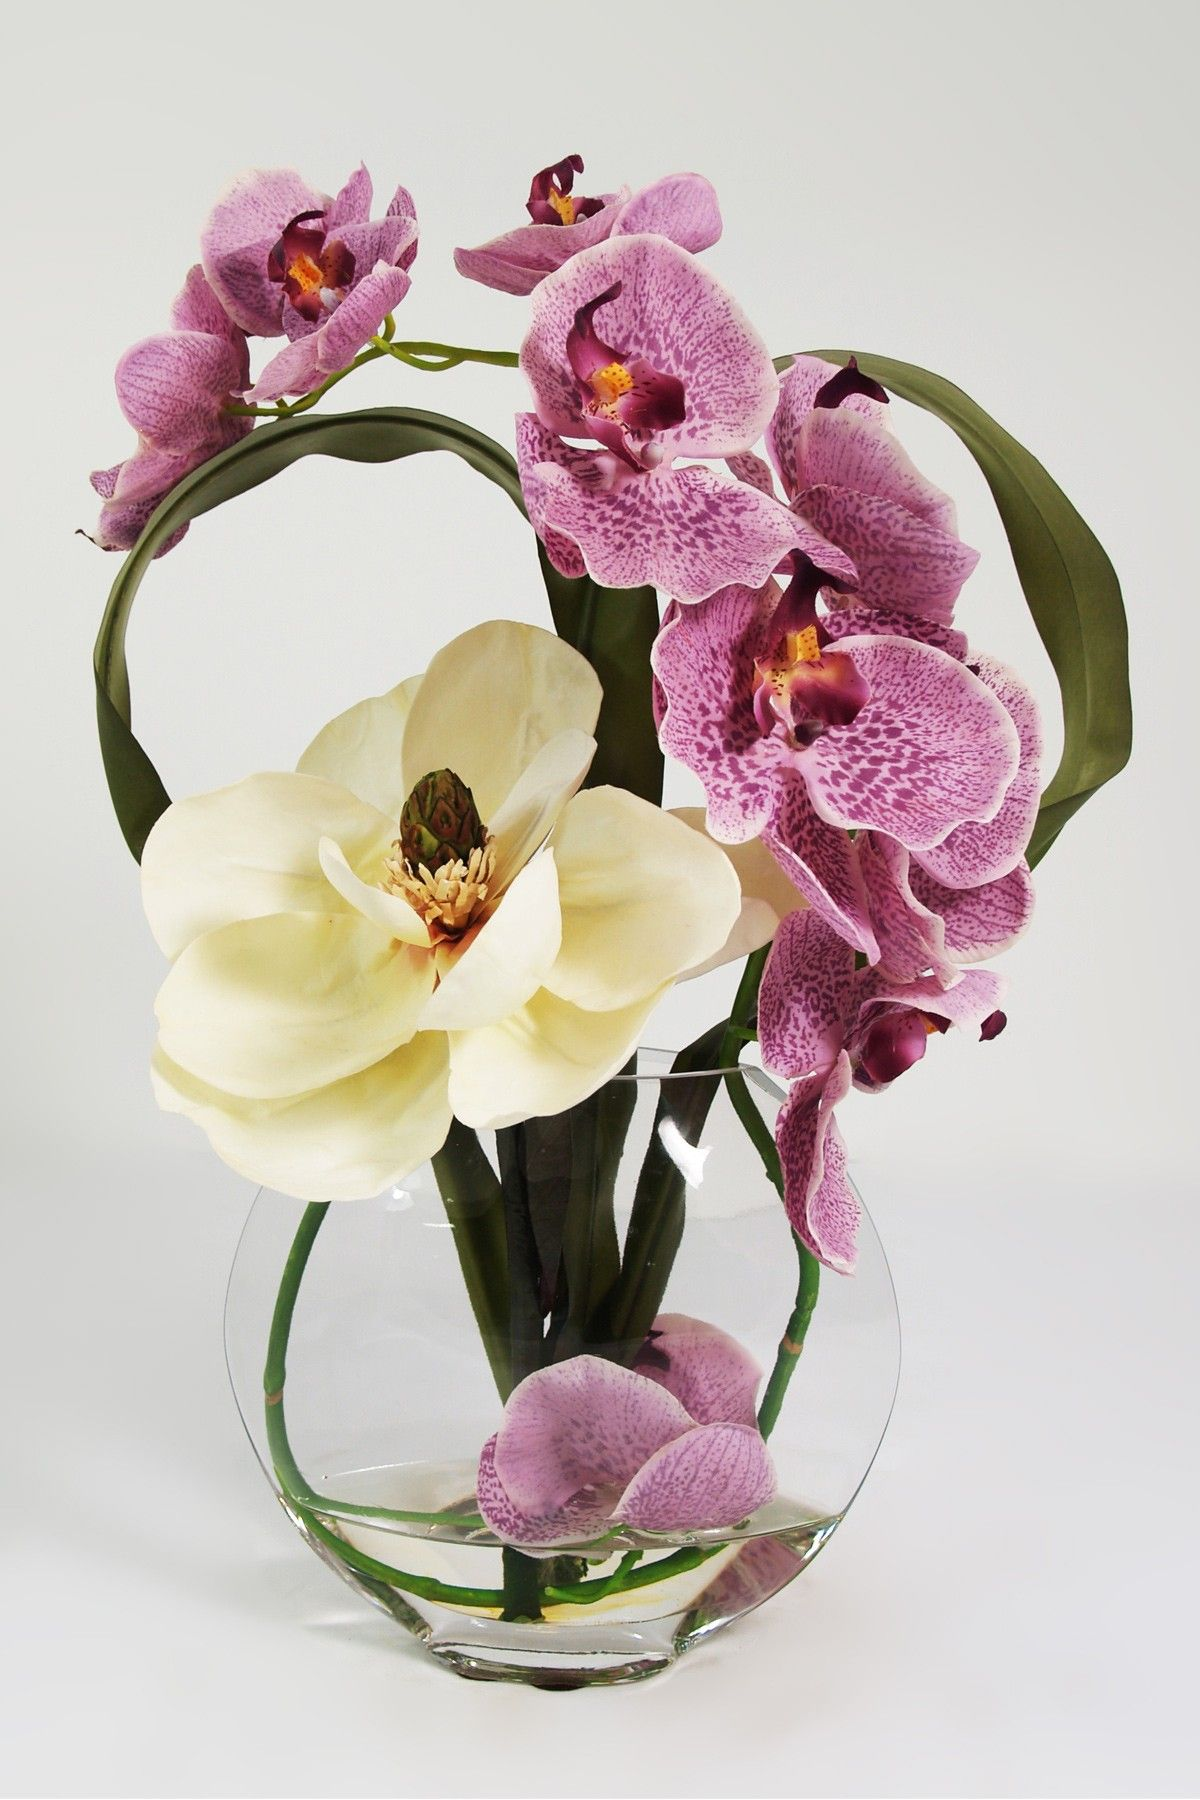 Phalaenopsis Orchid with Magnola in Glass